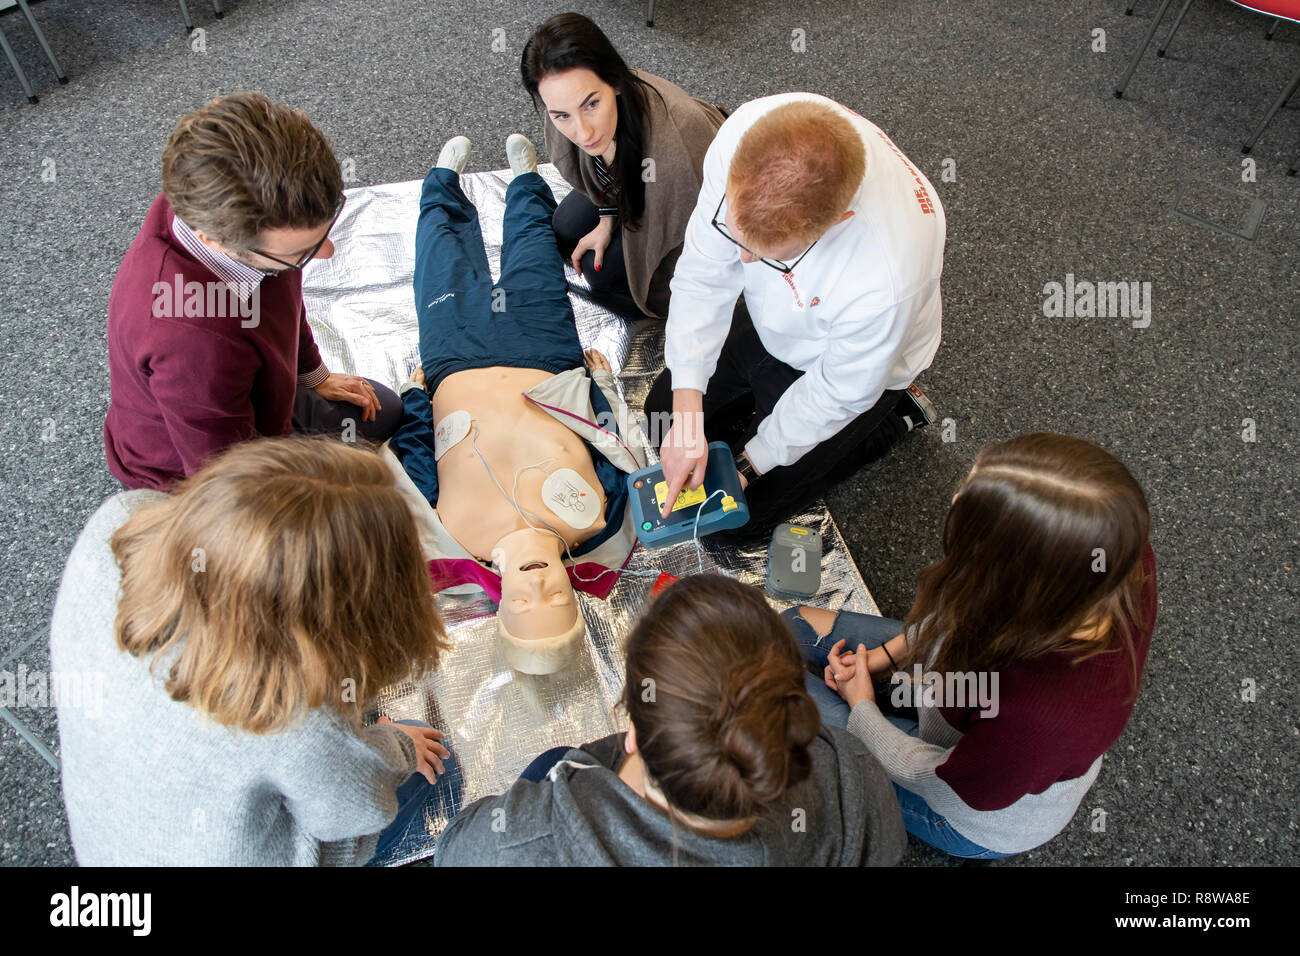 First Aid Course, First Aid Training, Emergencies, Practice Training, Resuscitation, Cardiac Arrest, Using AED, Automated External Defibrillation, Stock Photo